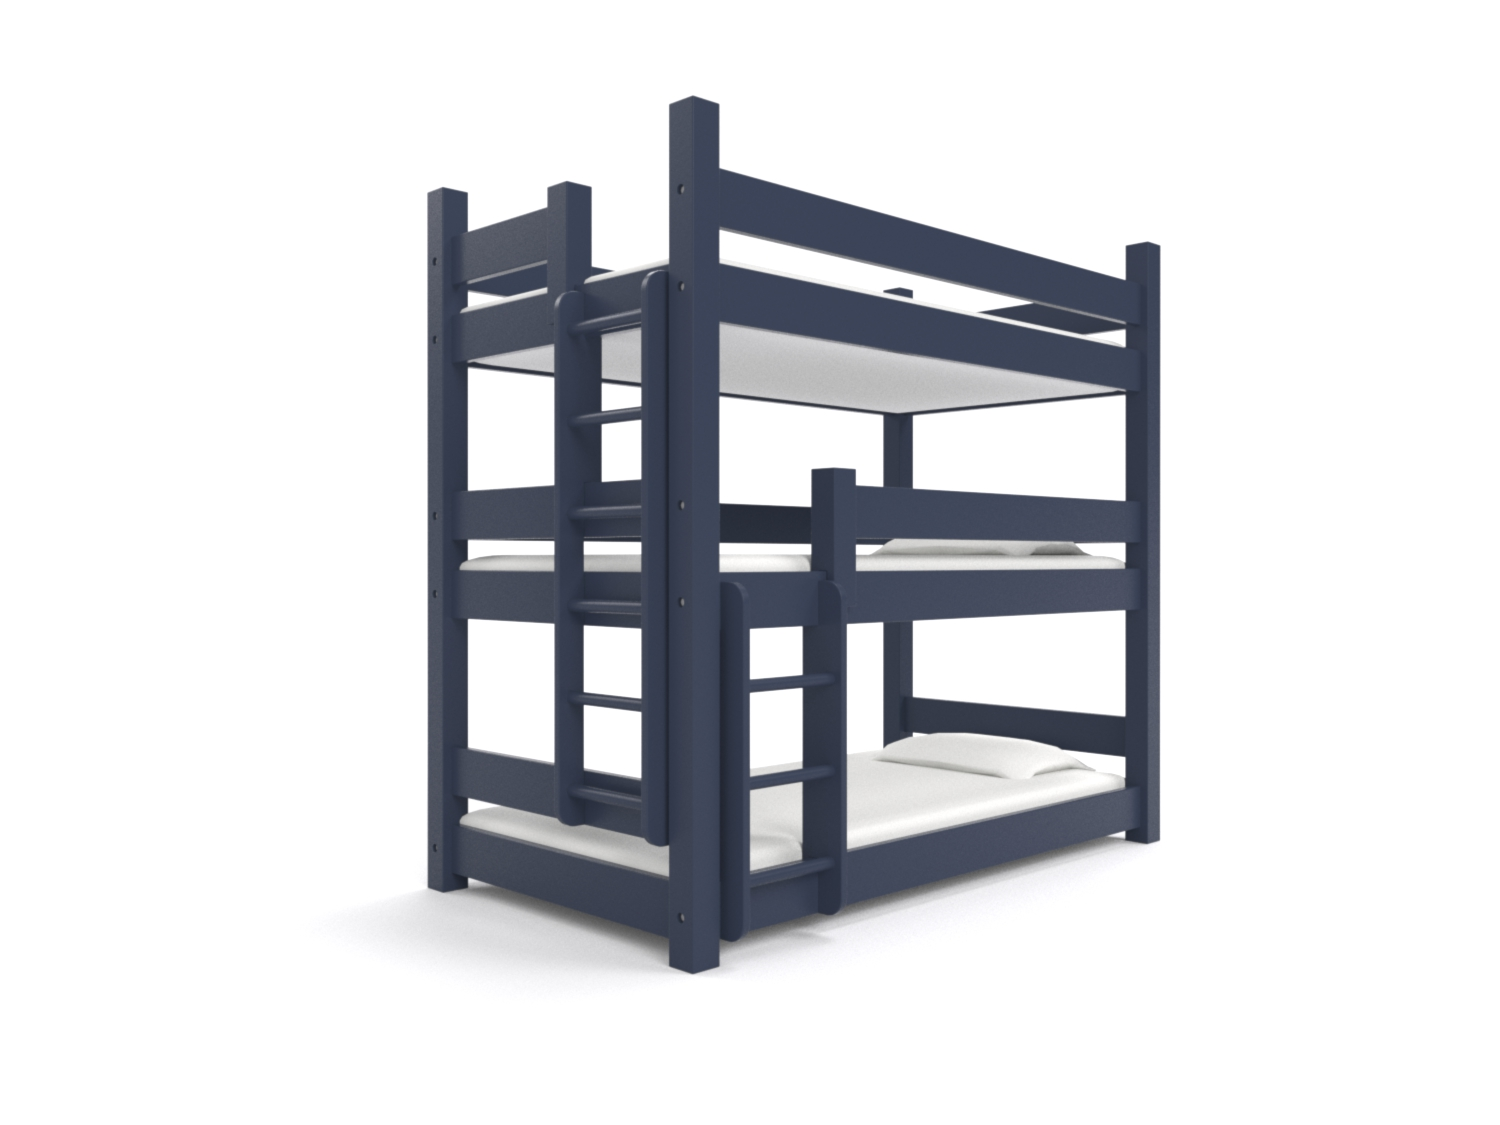 """ KATAHDIN "" Triple Twin -  A triple decker for a bunk room. Holds three 75"" long twin beds. Options include extra headroom, extra safety rails, ""porthole"" ladders and extra length. Made to hold adults!  Starting at $3395:   Click for Custom Quote"